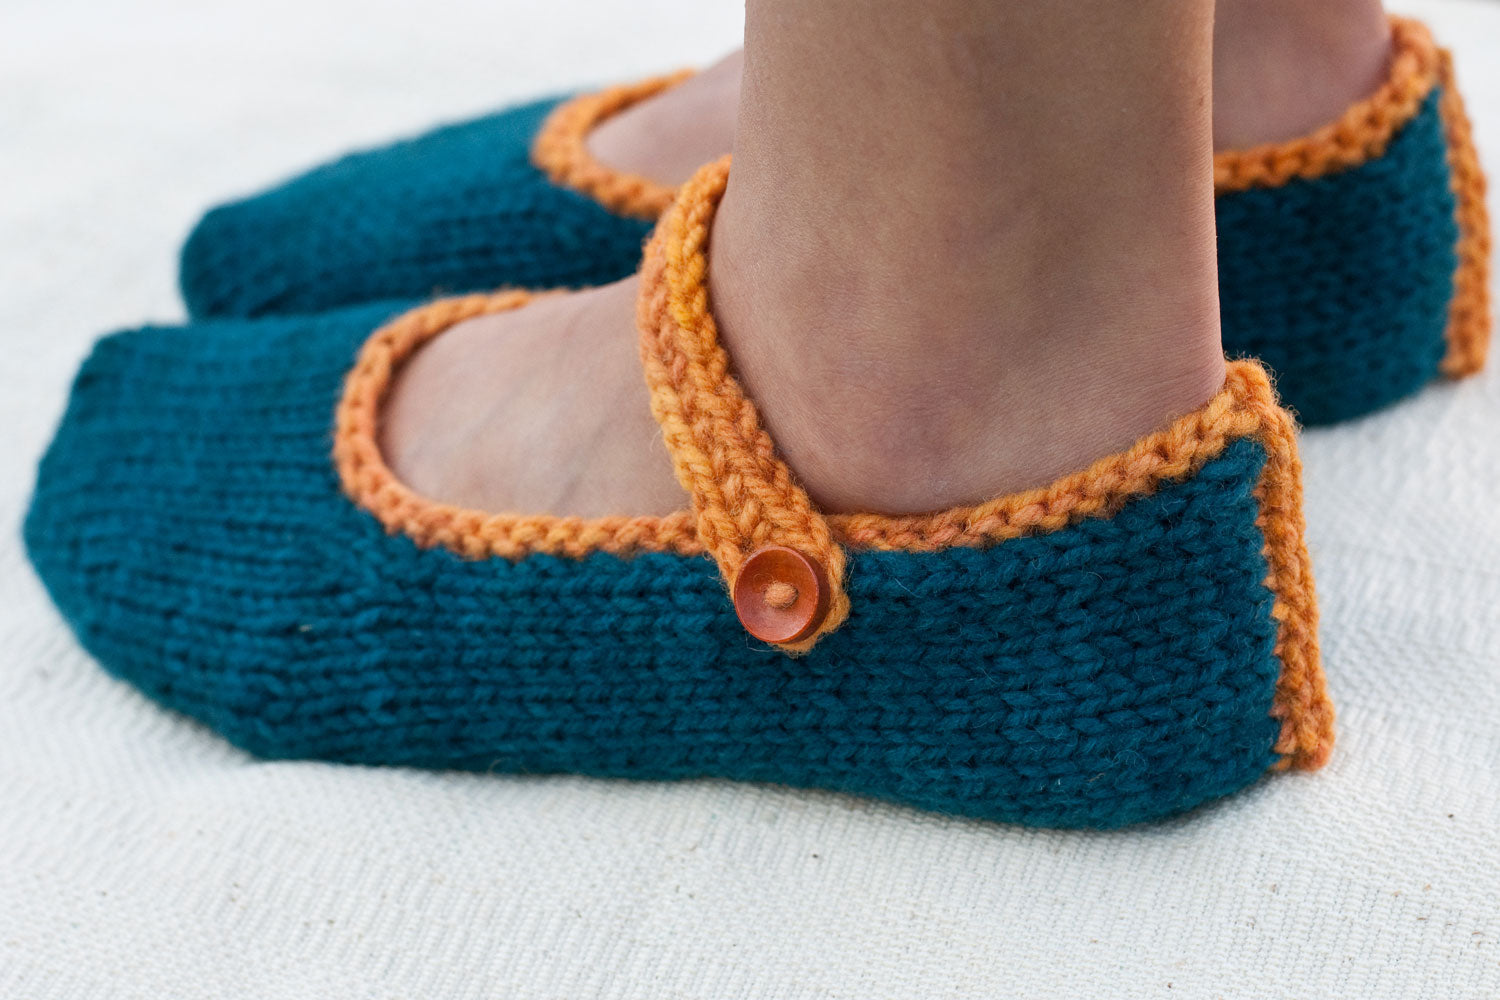 left side of woman's feet in hand-knit slippers showing button and strap detail